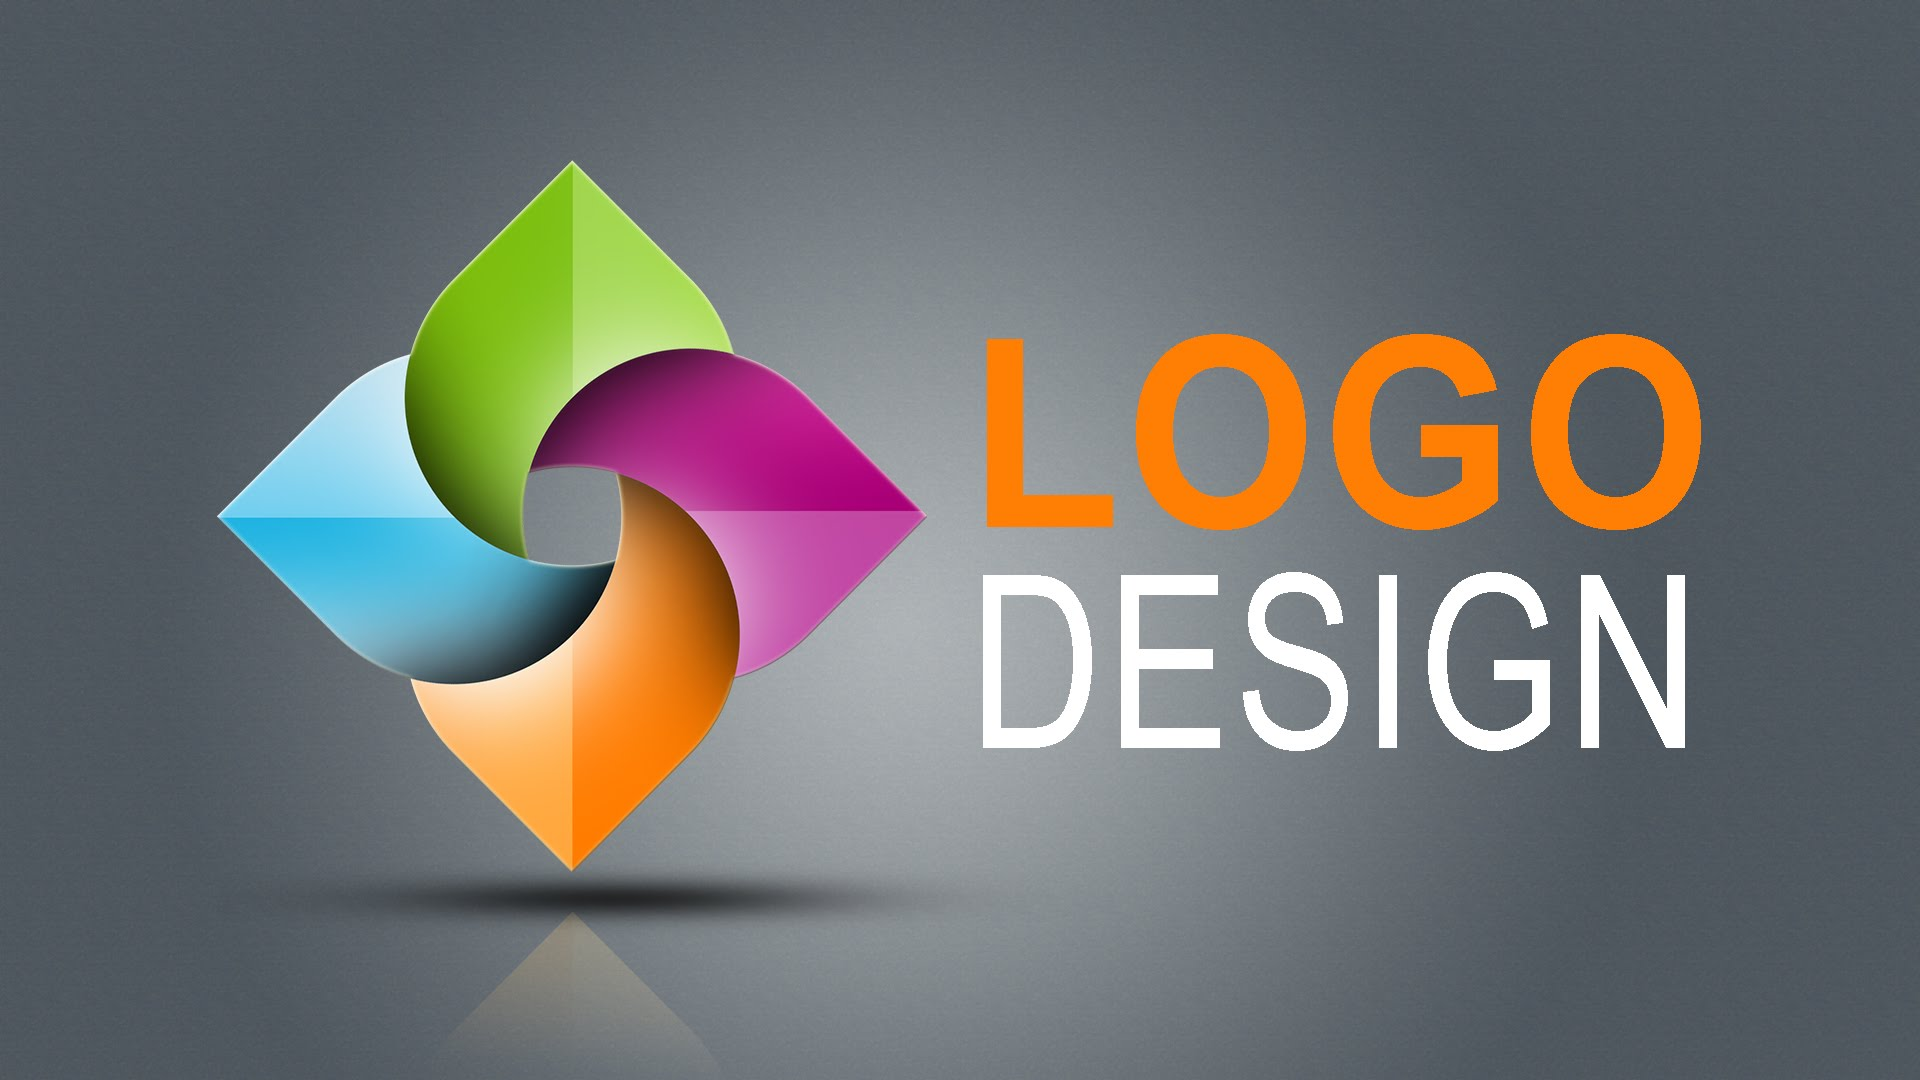 3d logo design in adobe photoshop tutorials clickdown photoshop video tutorials 513d logo design in adobe photoshop1 baditri Gallery